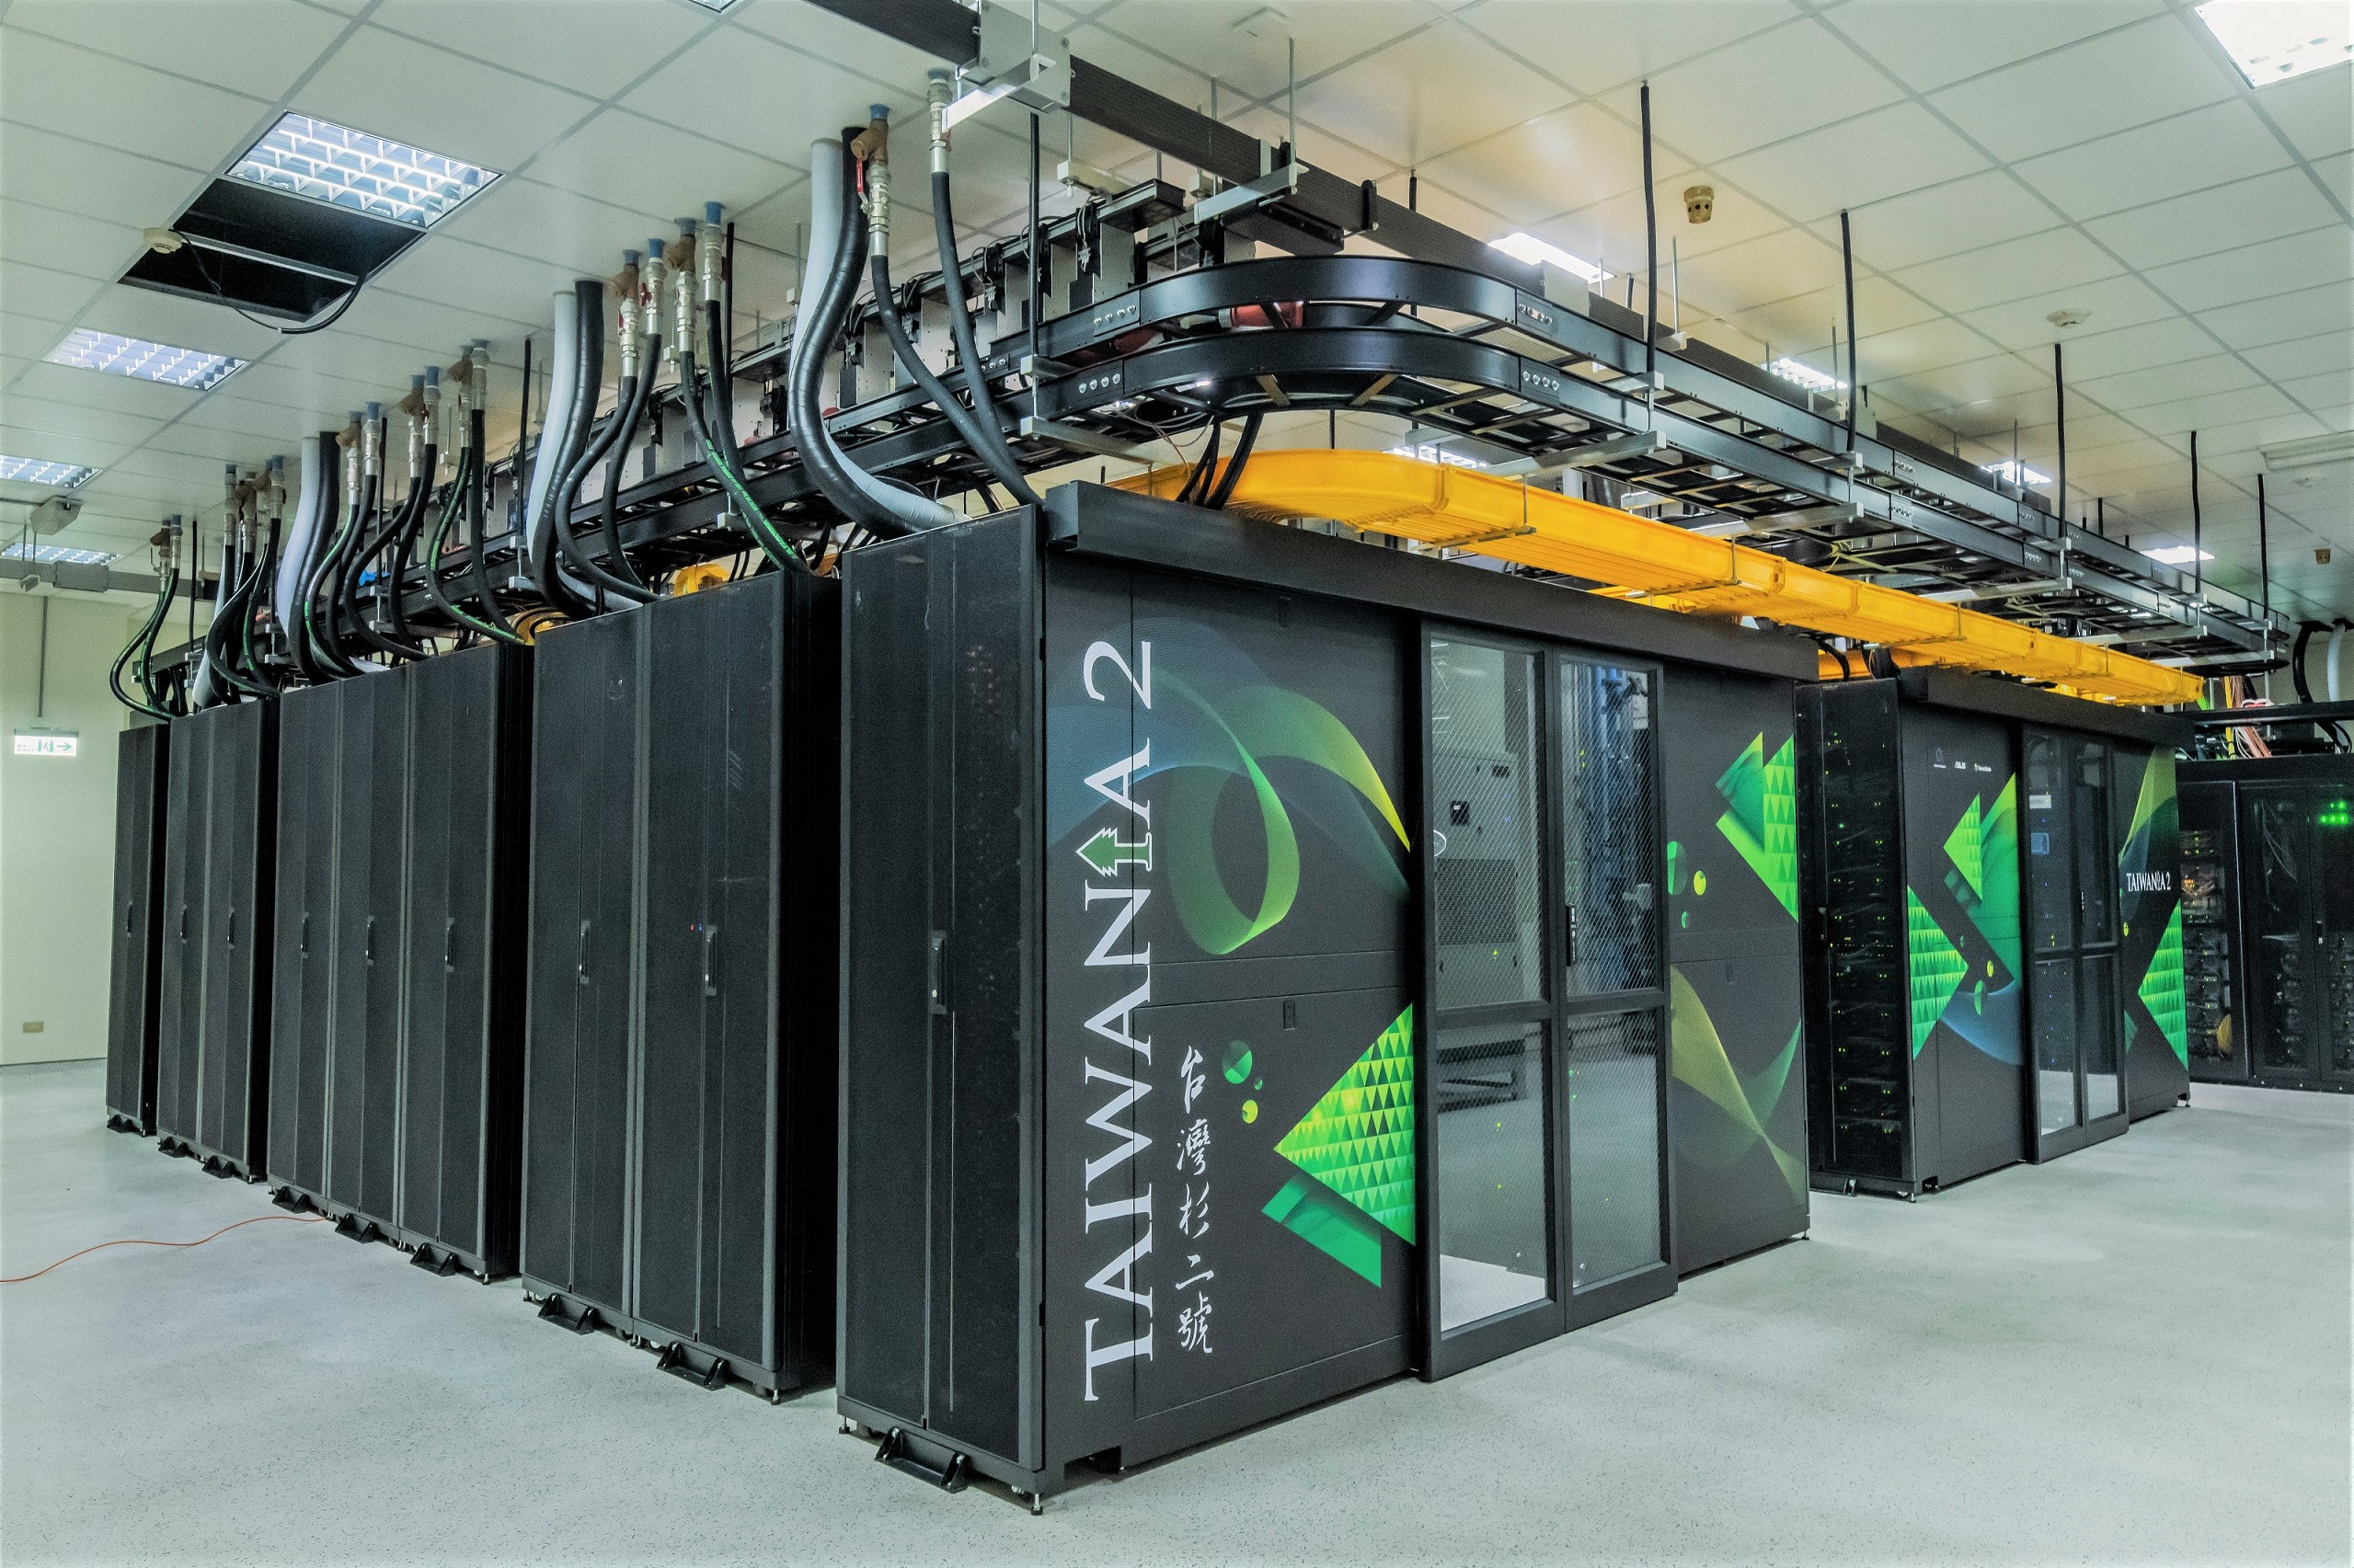 Supercomputer Taiwania 2 ranked no.20 in high-performance computing mainframes of TOP 500 (9PFLOPS)